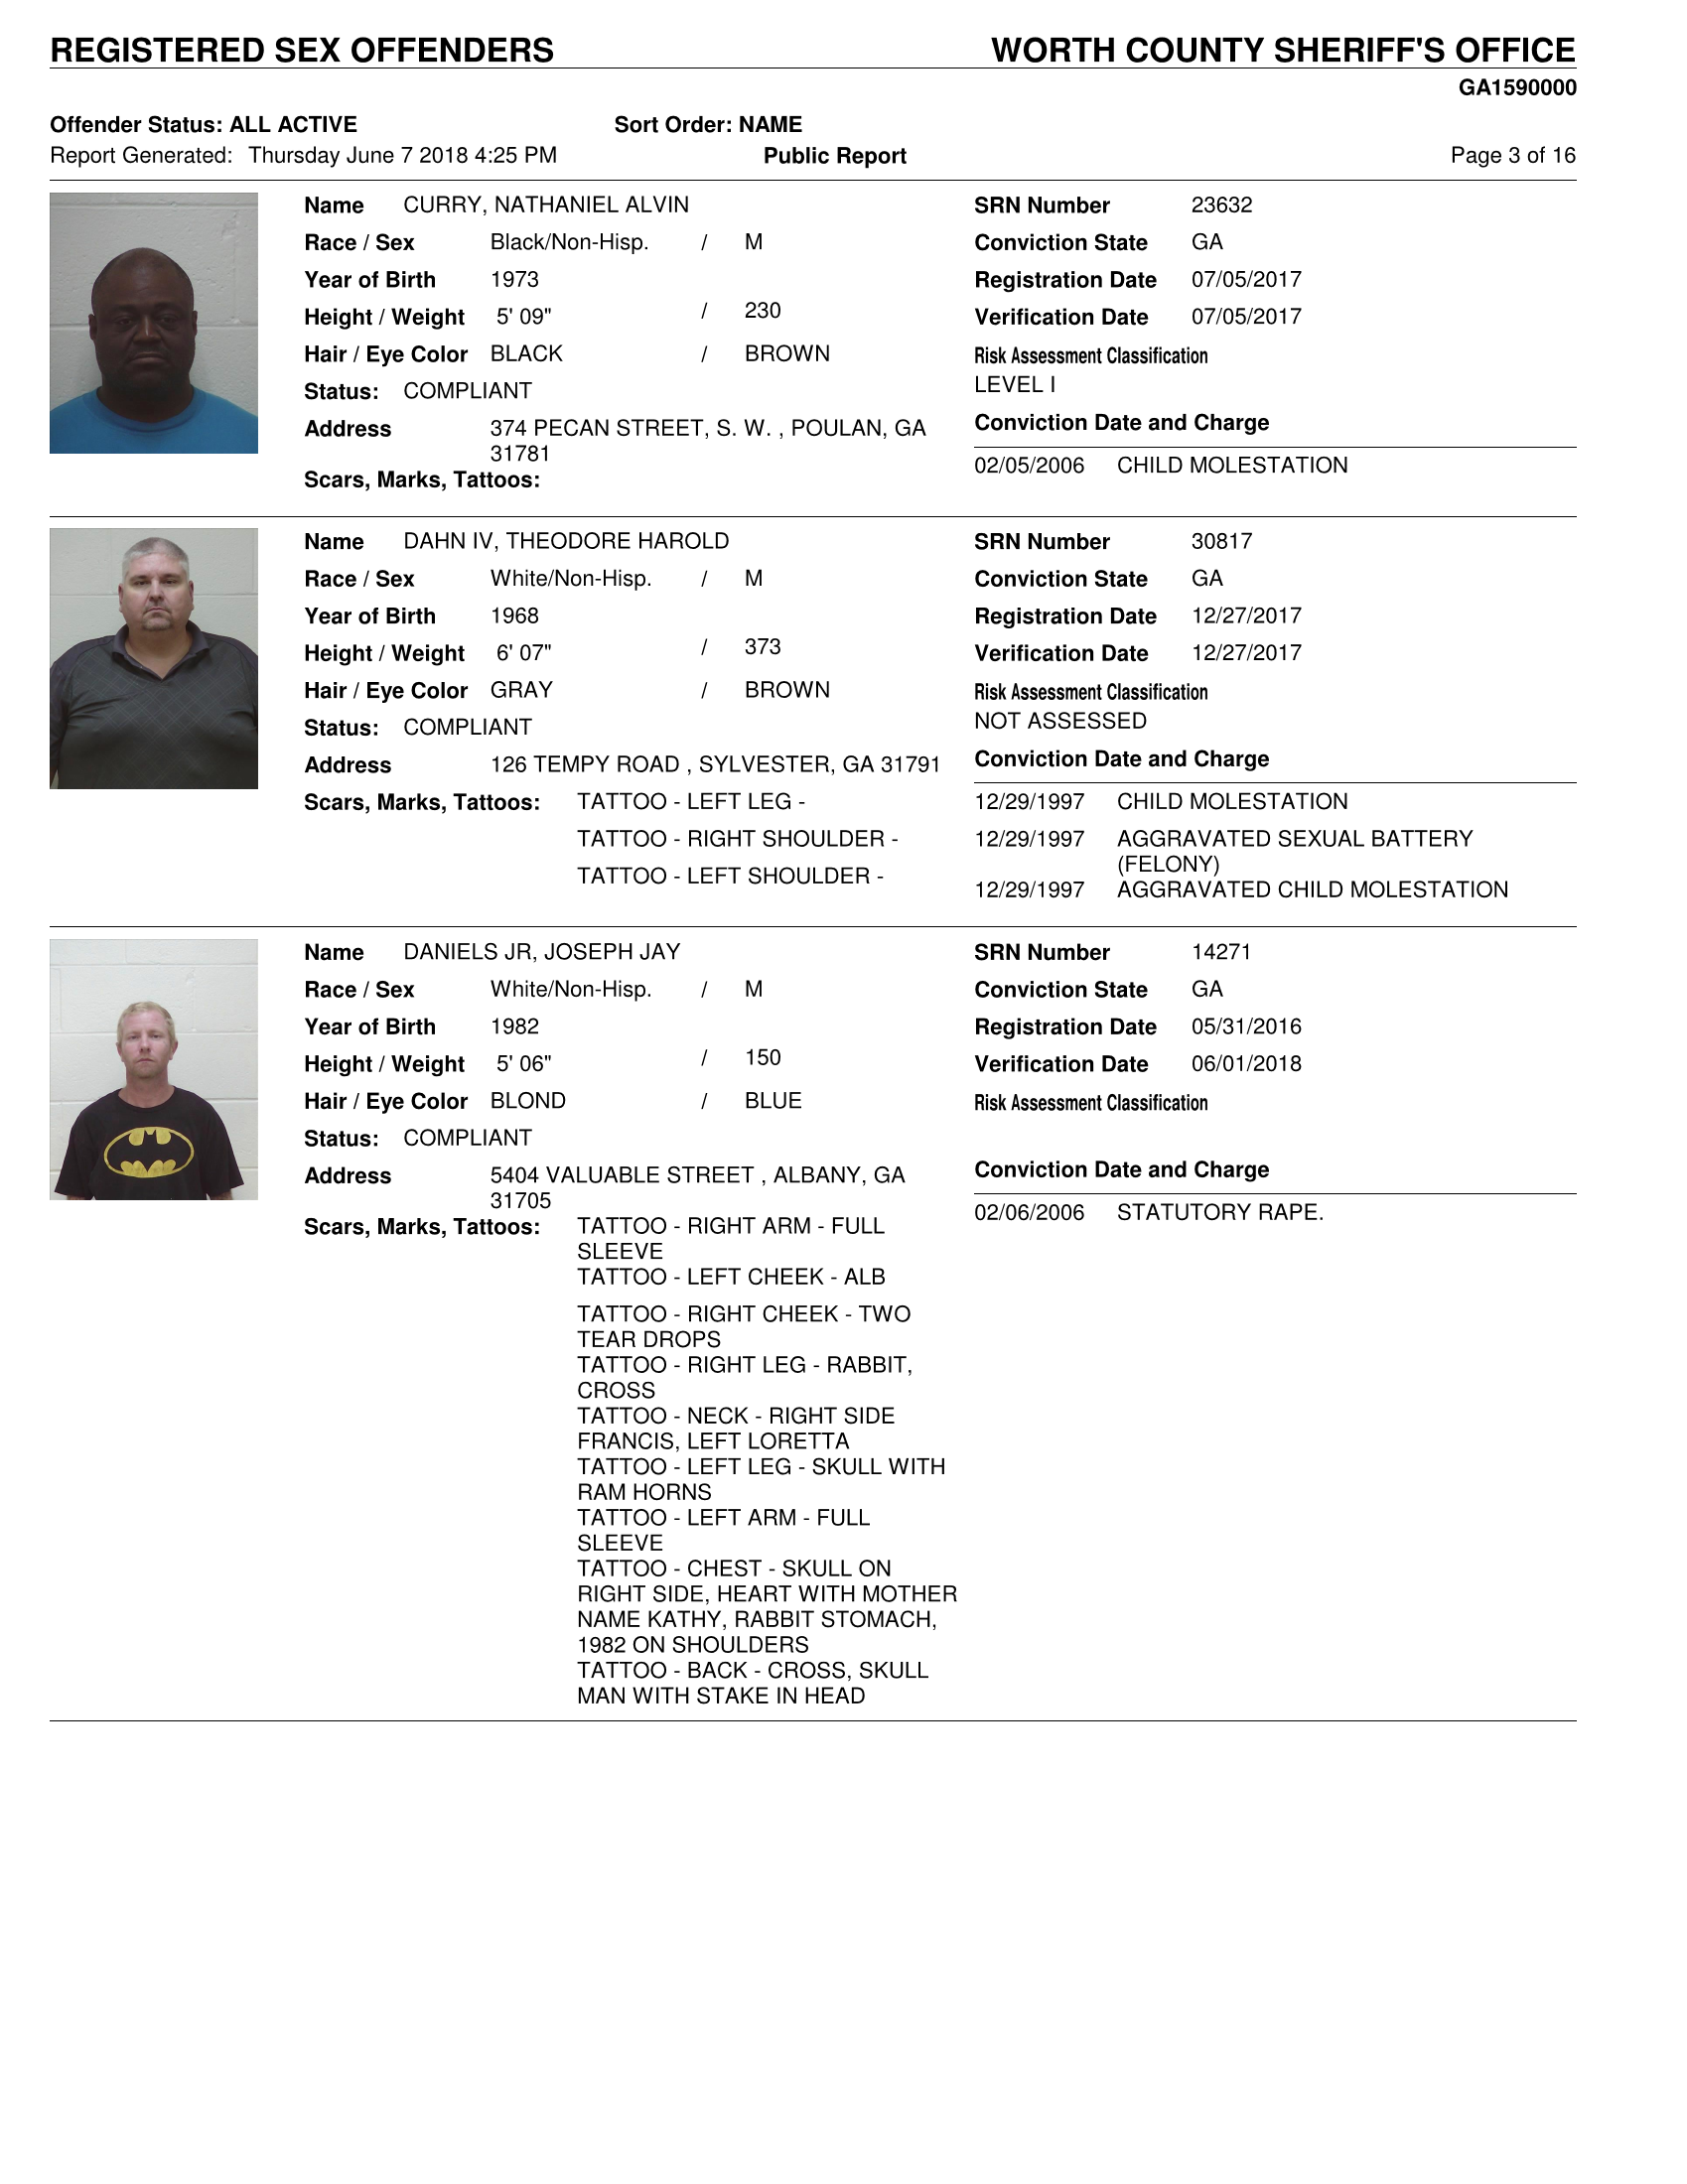 Sex Offenders | Worth County Sheriff